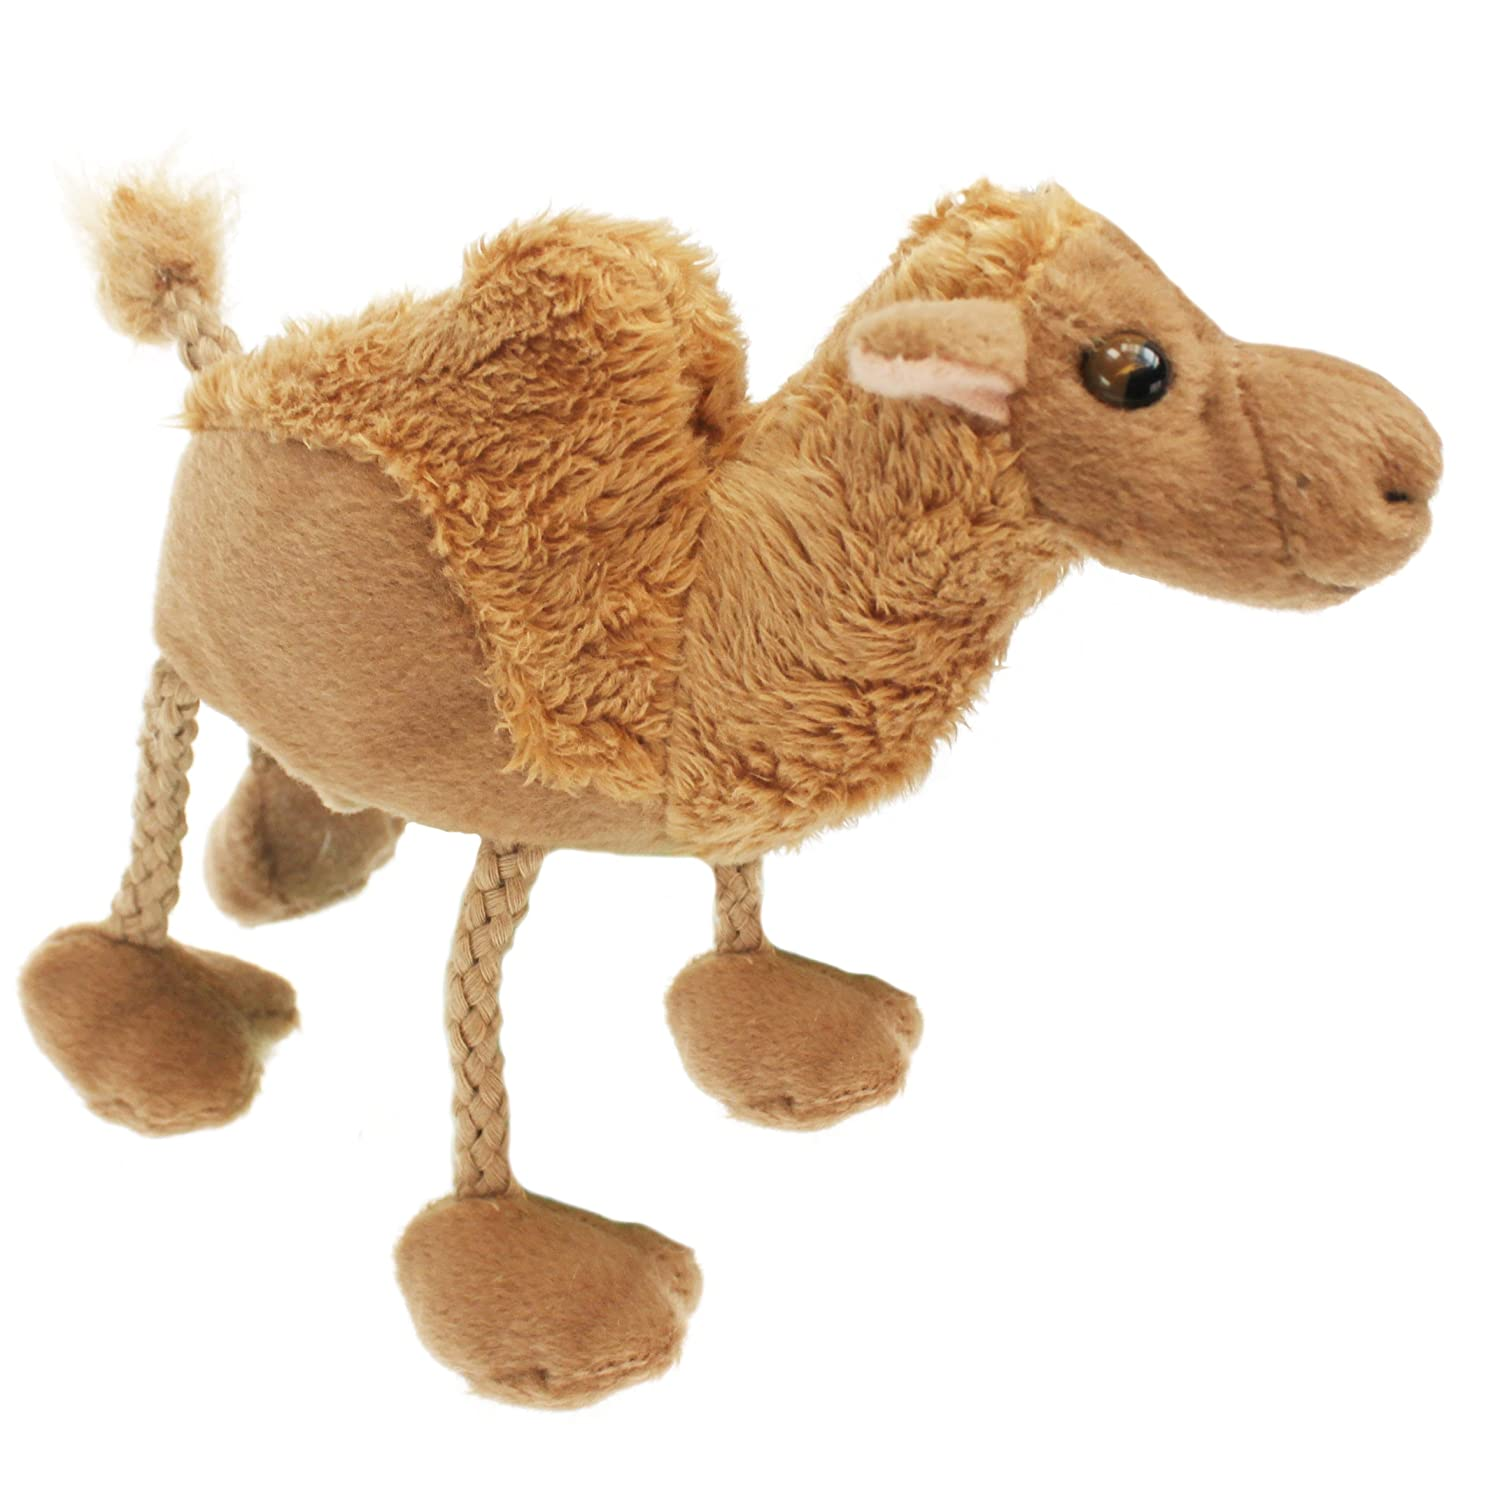 The Puppet Company Finger Puppets - Camel PC002123